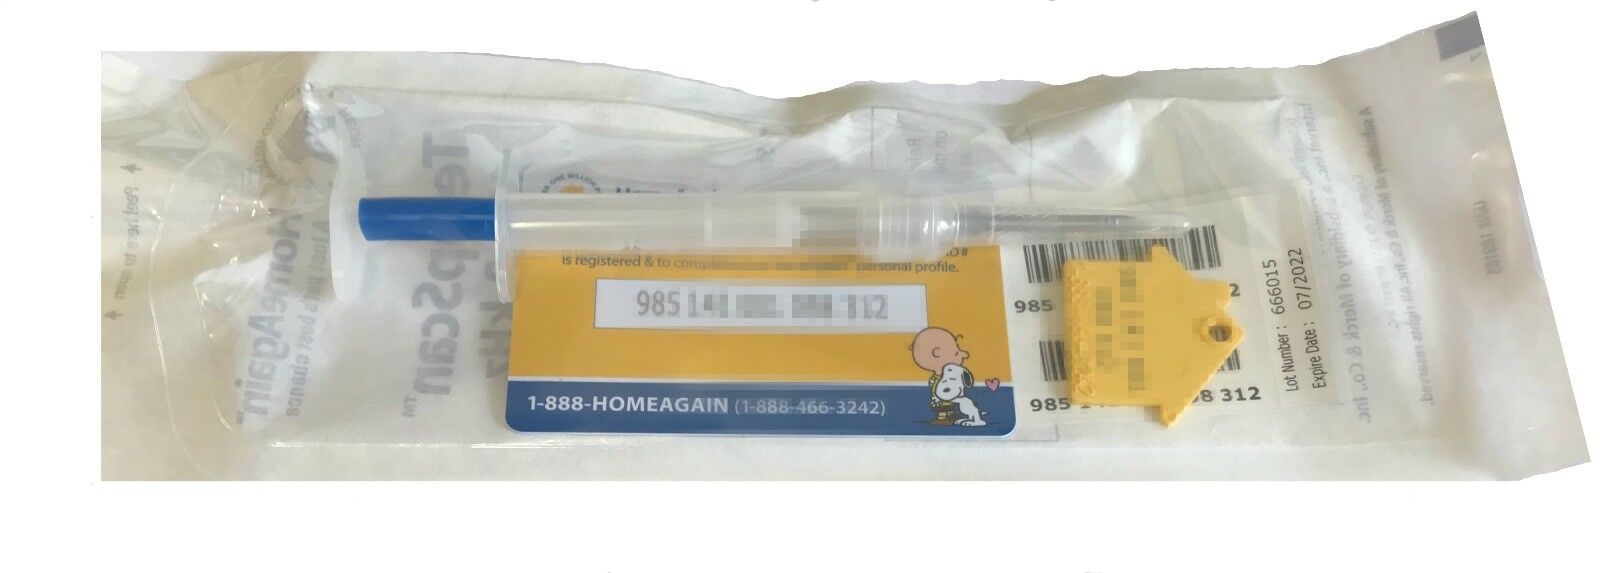 HomeAgain TempScan 134.2KHz Temperature Detecting Microchip ISO - $12.85